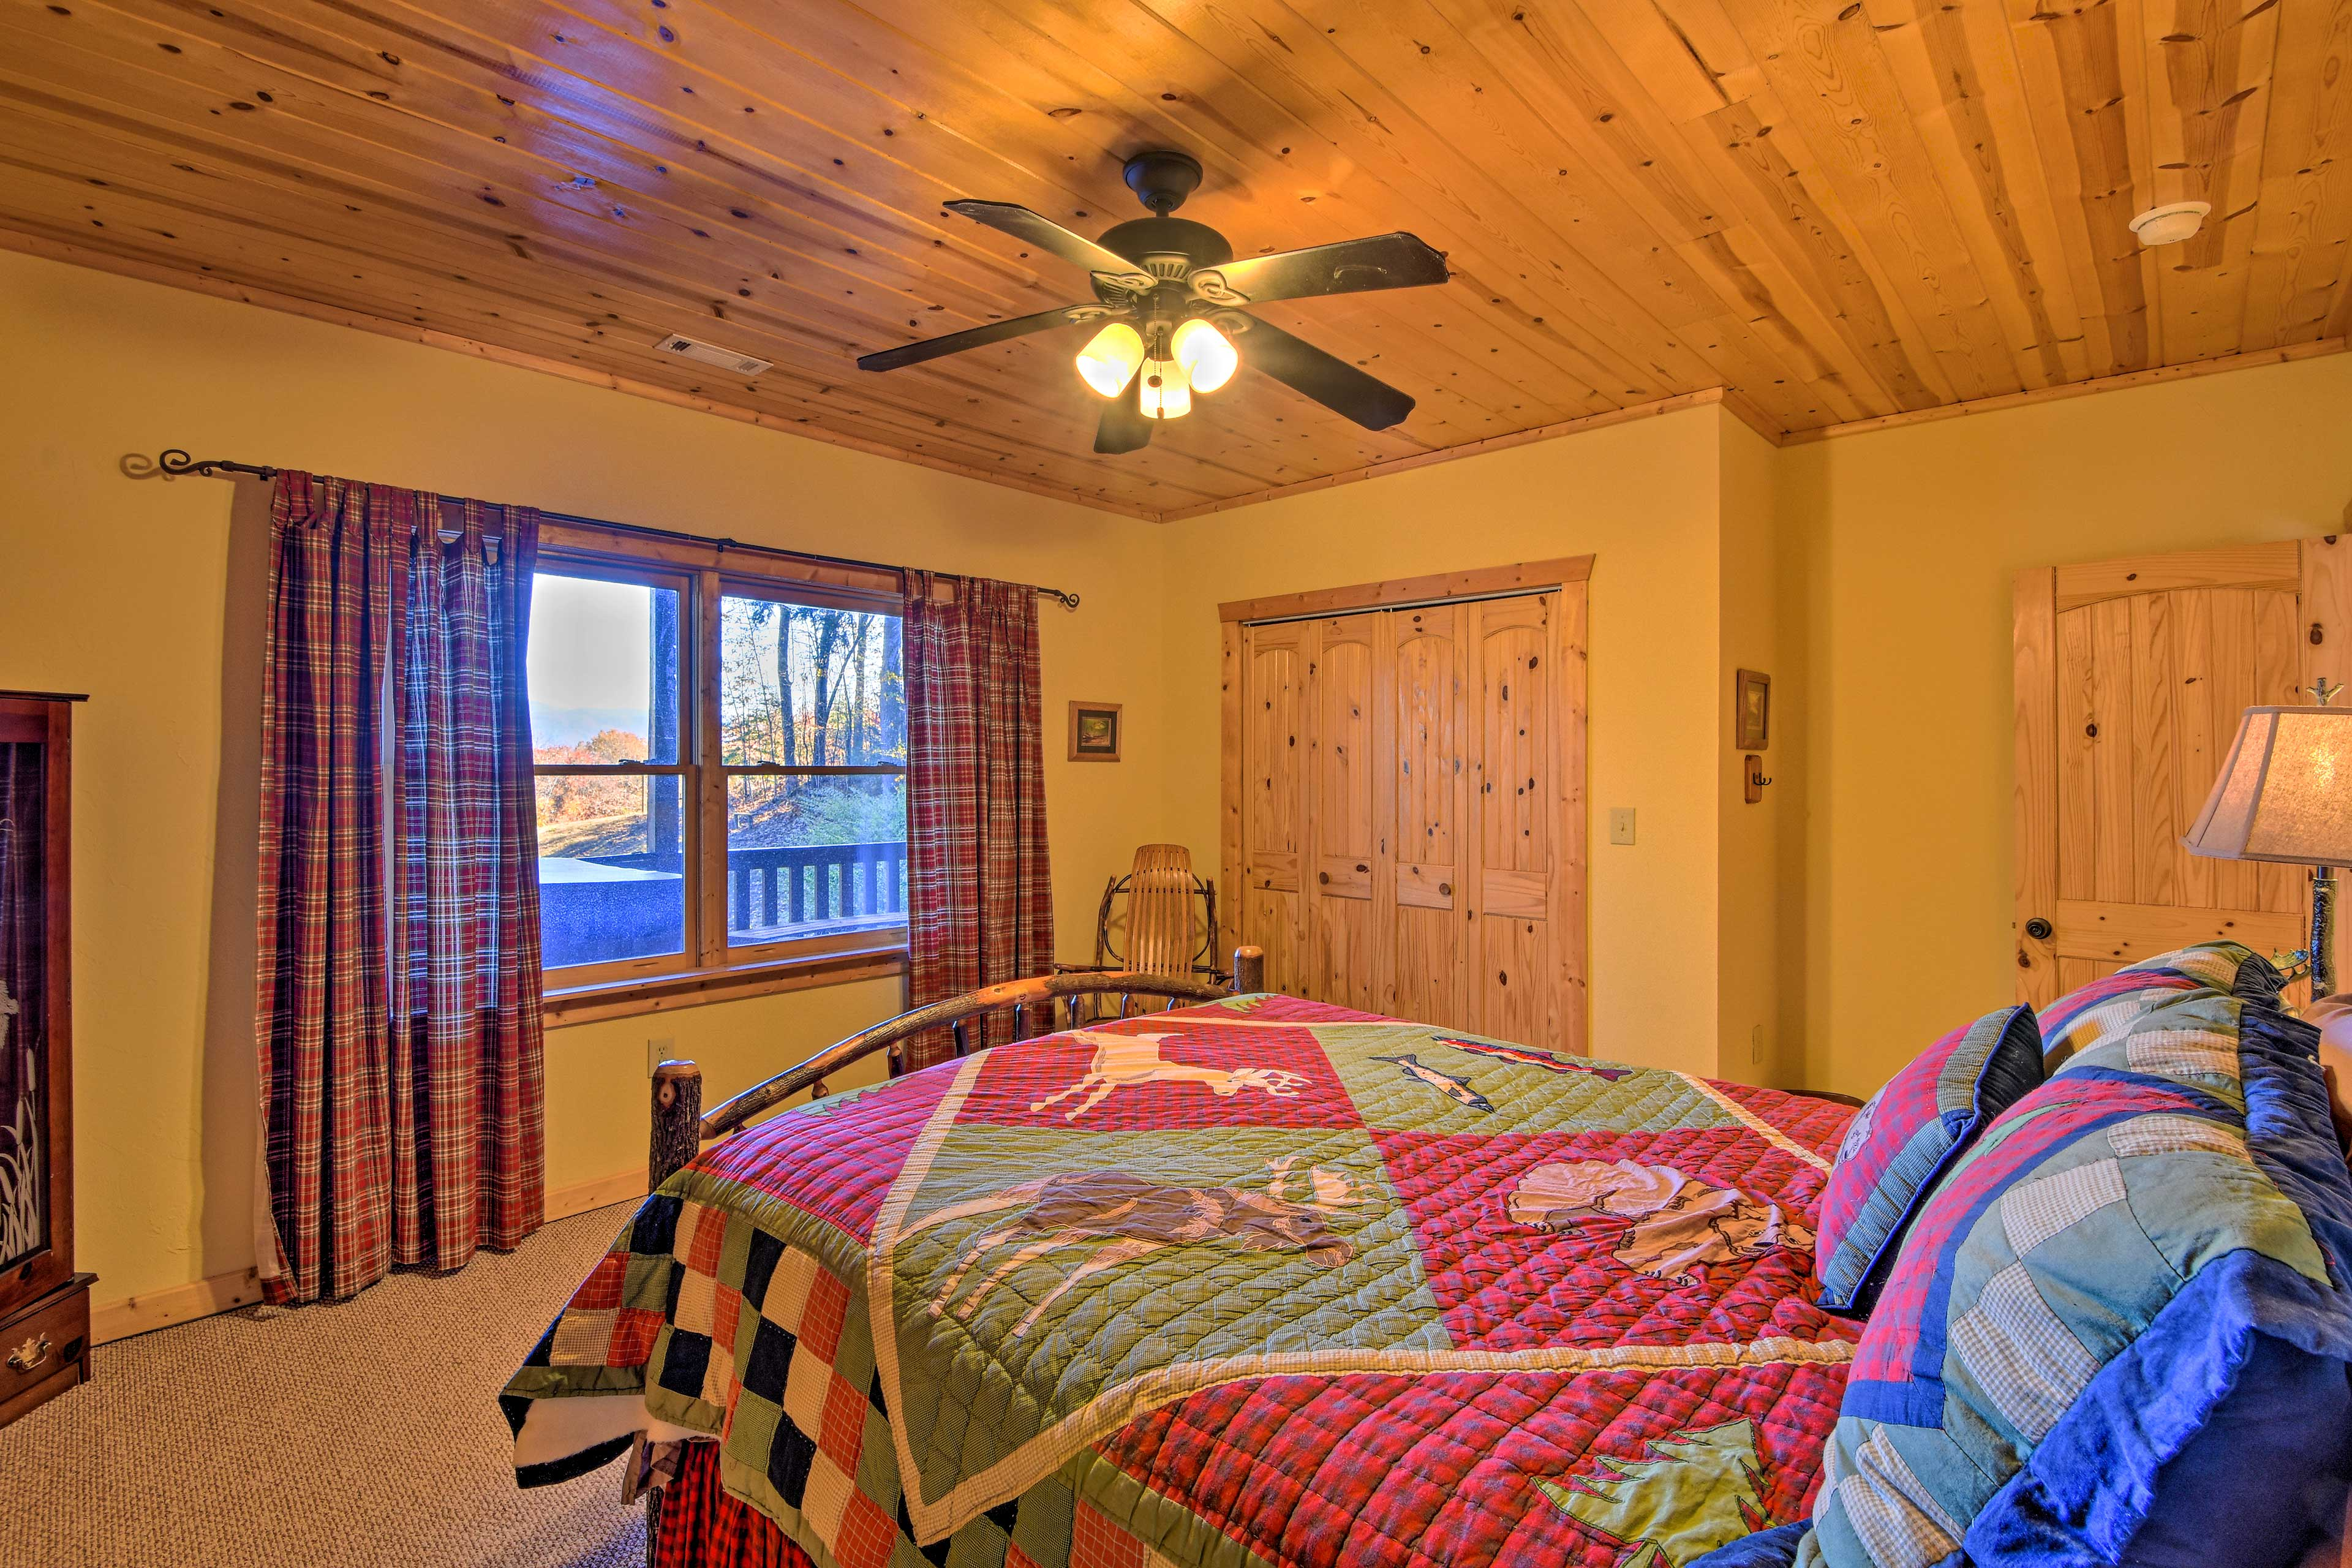 Two travelers will sleep comfortably under the ceiling fan in this room.